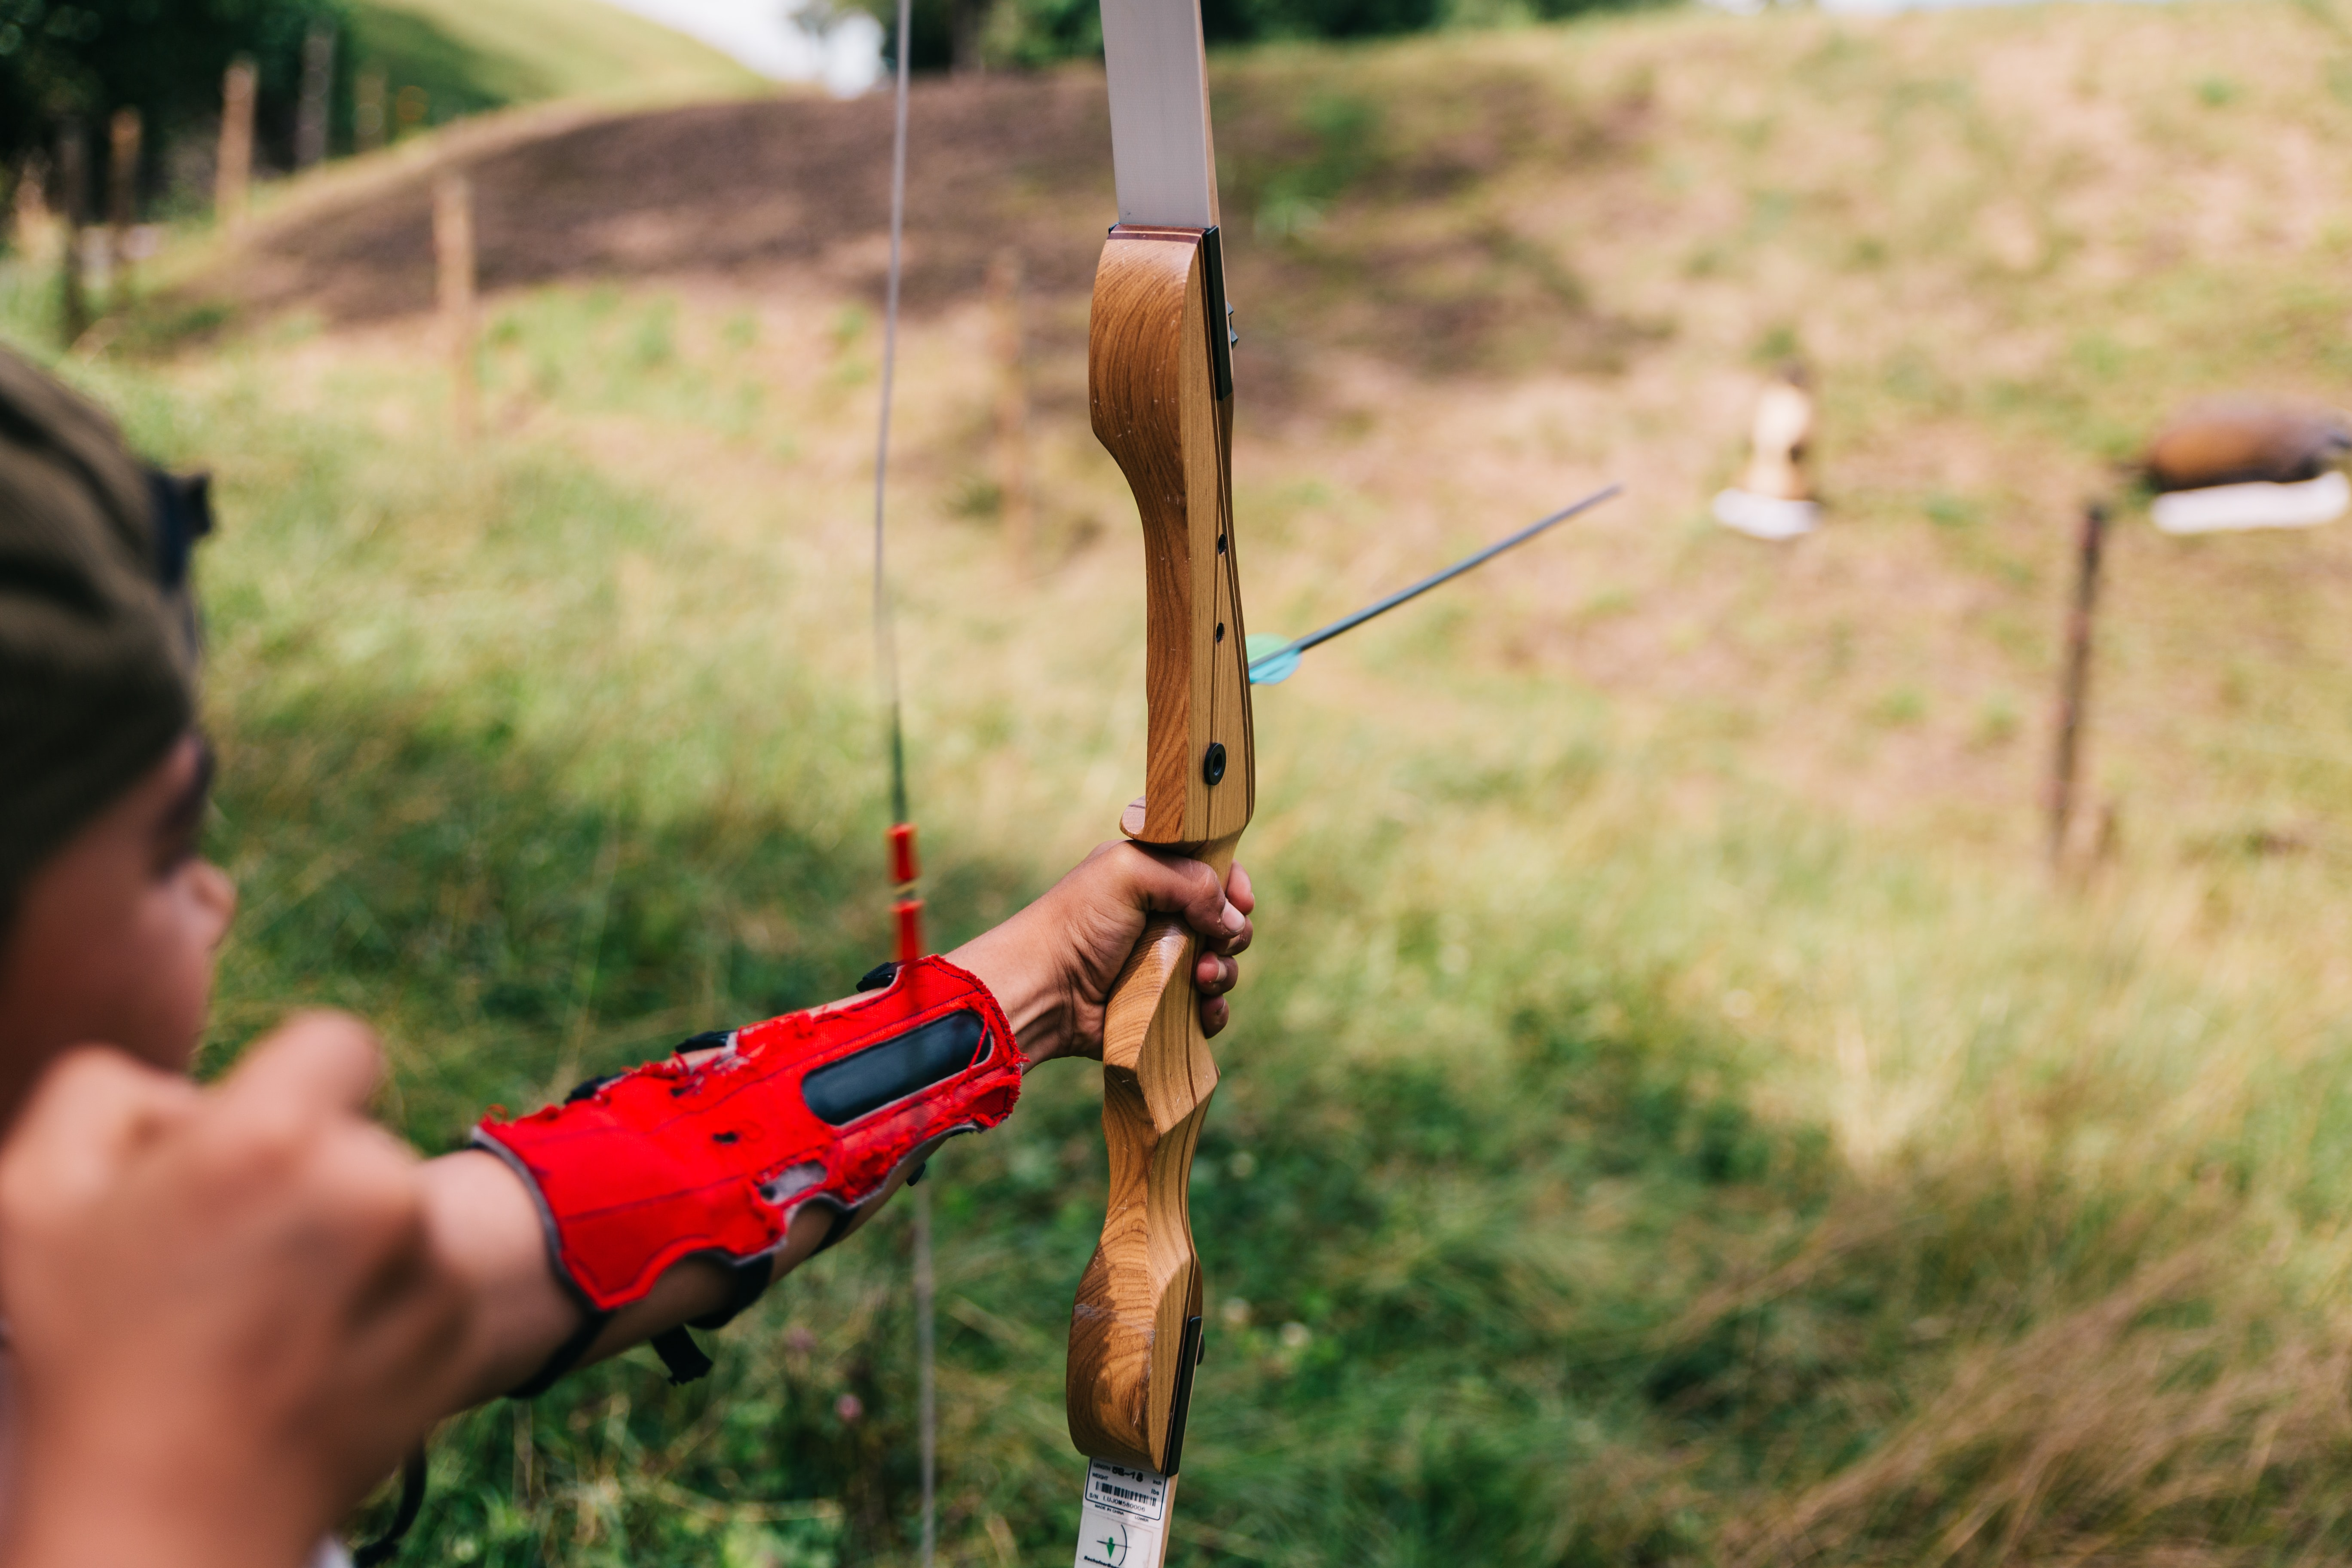 Person holds bow and arrow and aims at target